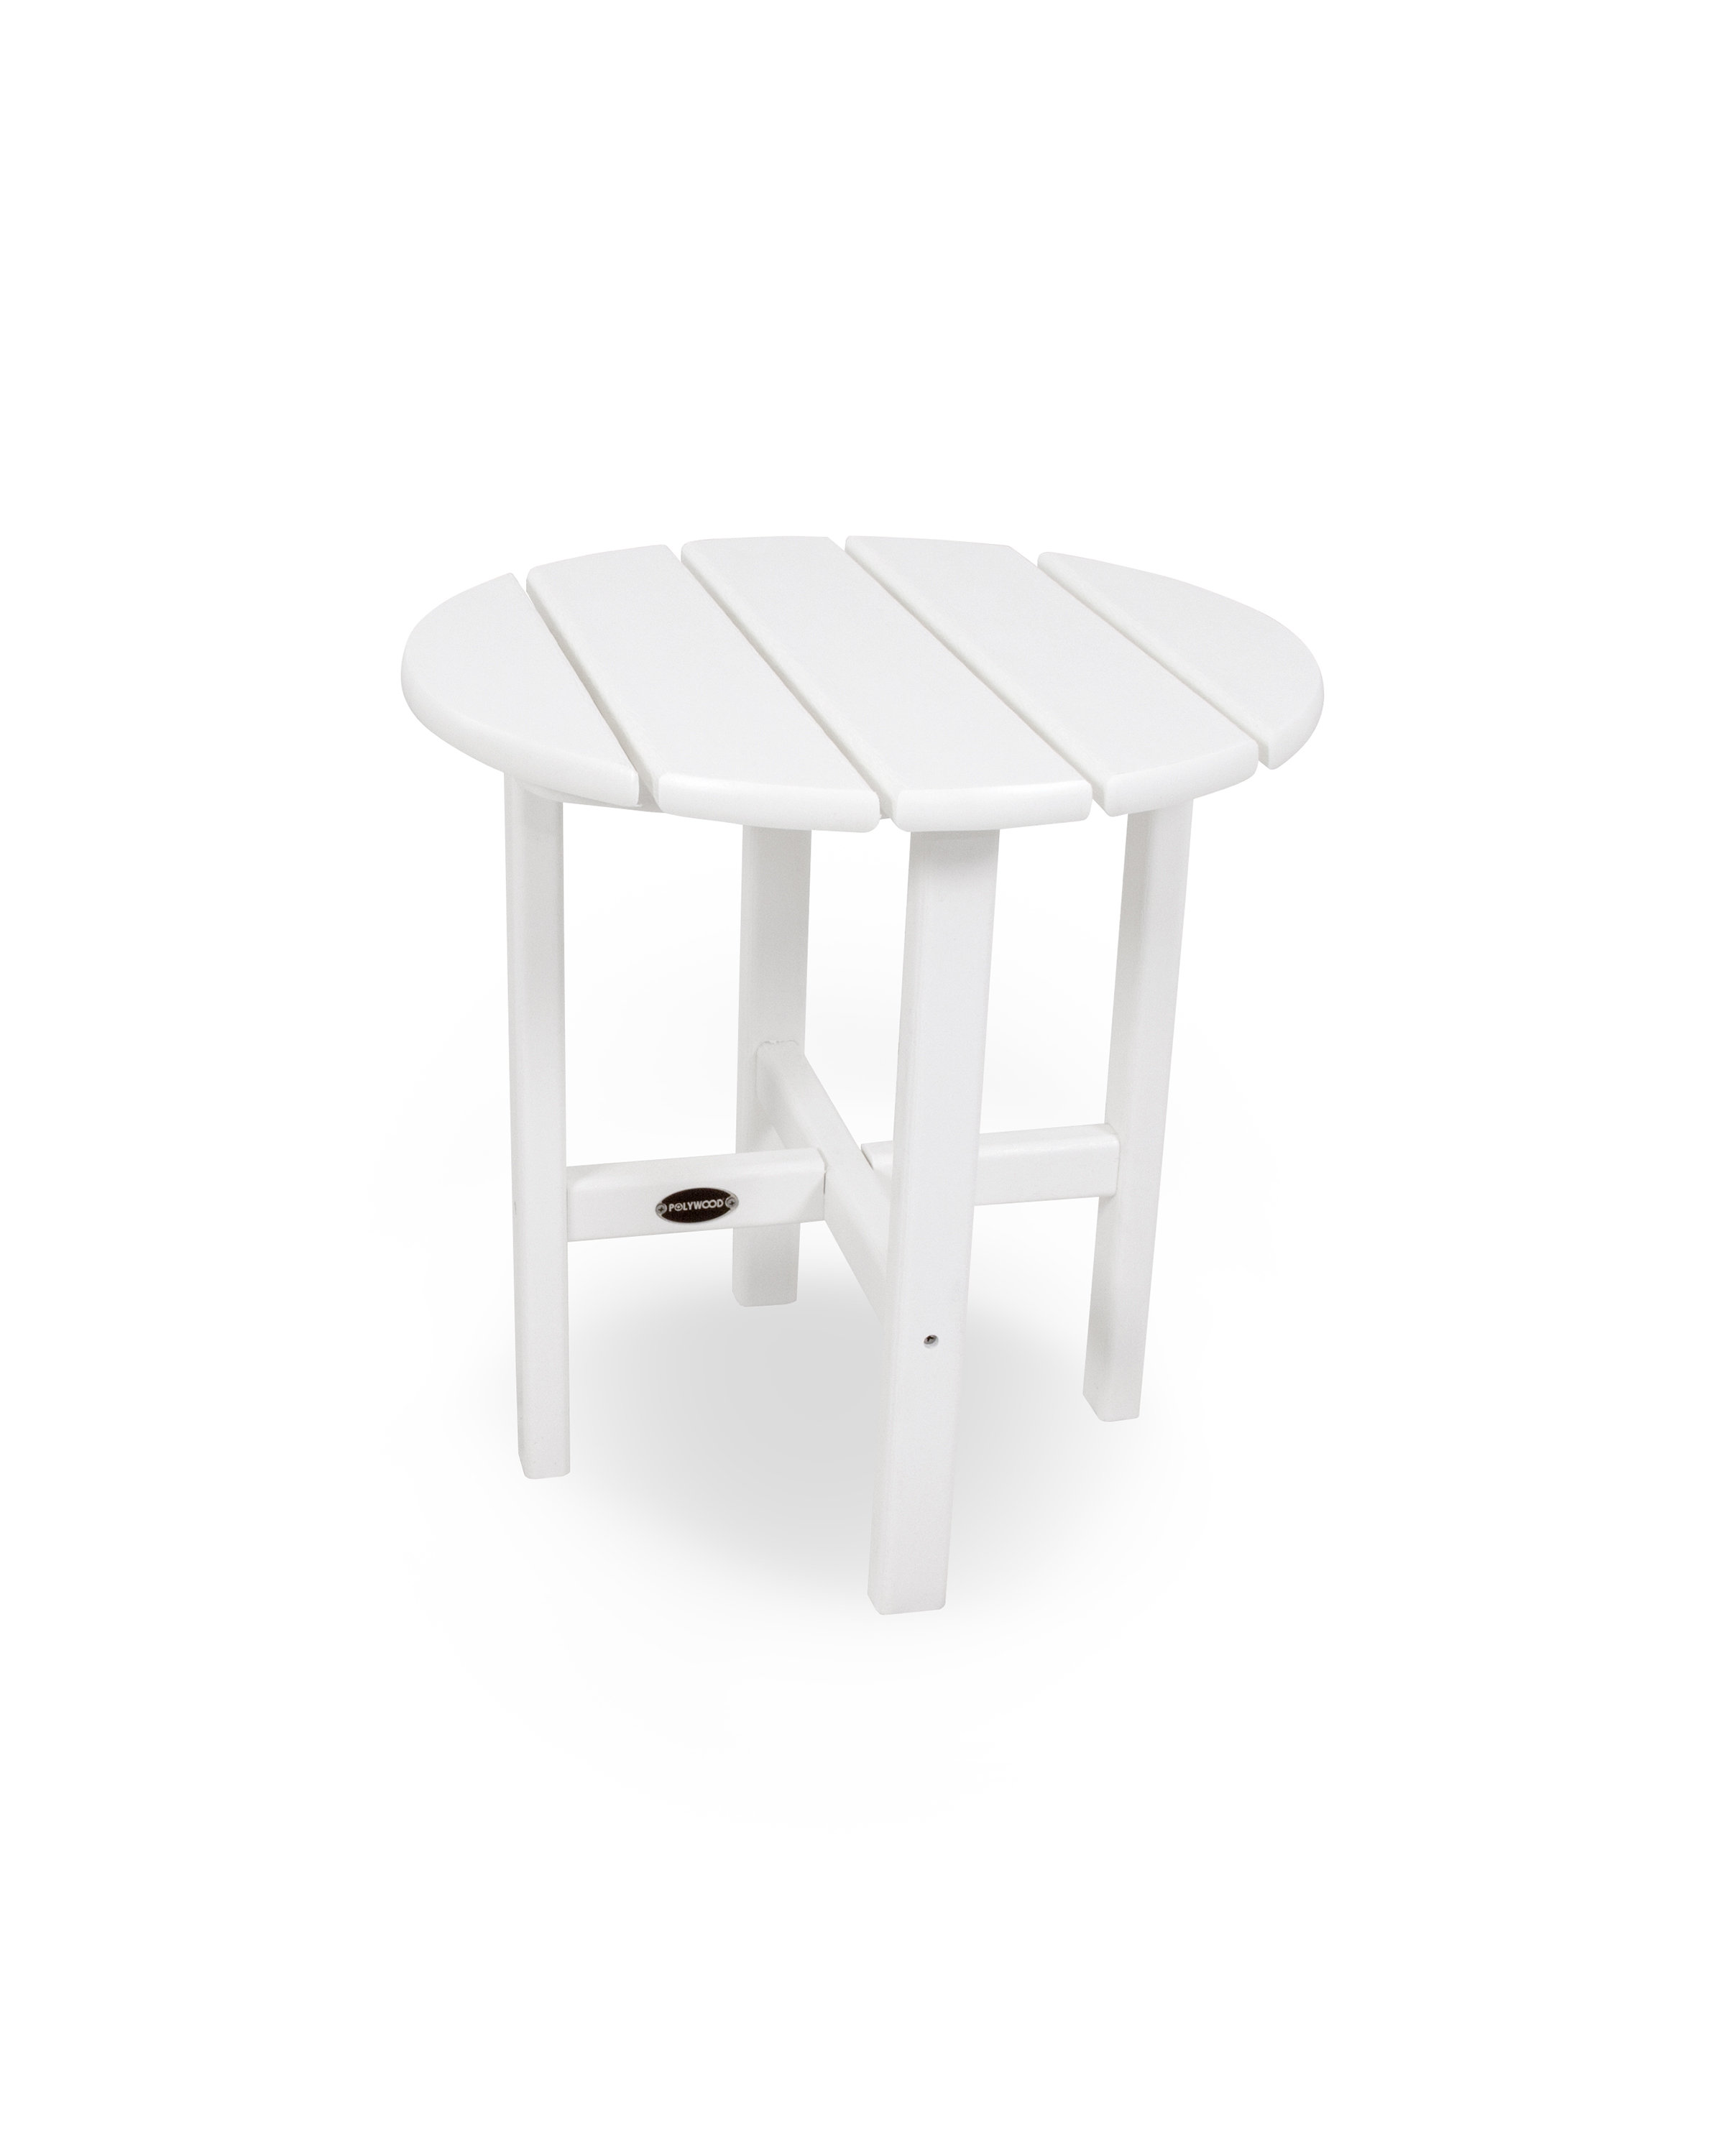 polywood side table reviews tall outdoor accent end plans yellow furniture storage glass with drawers dining room placemats patio clearance mainstays marble target file cabinet